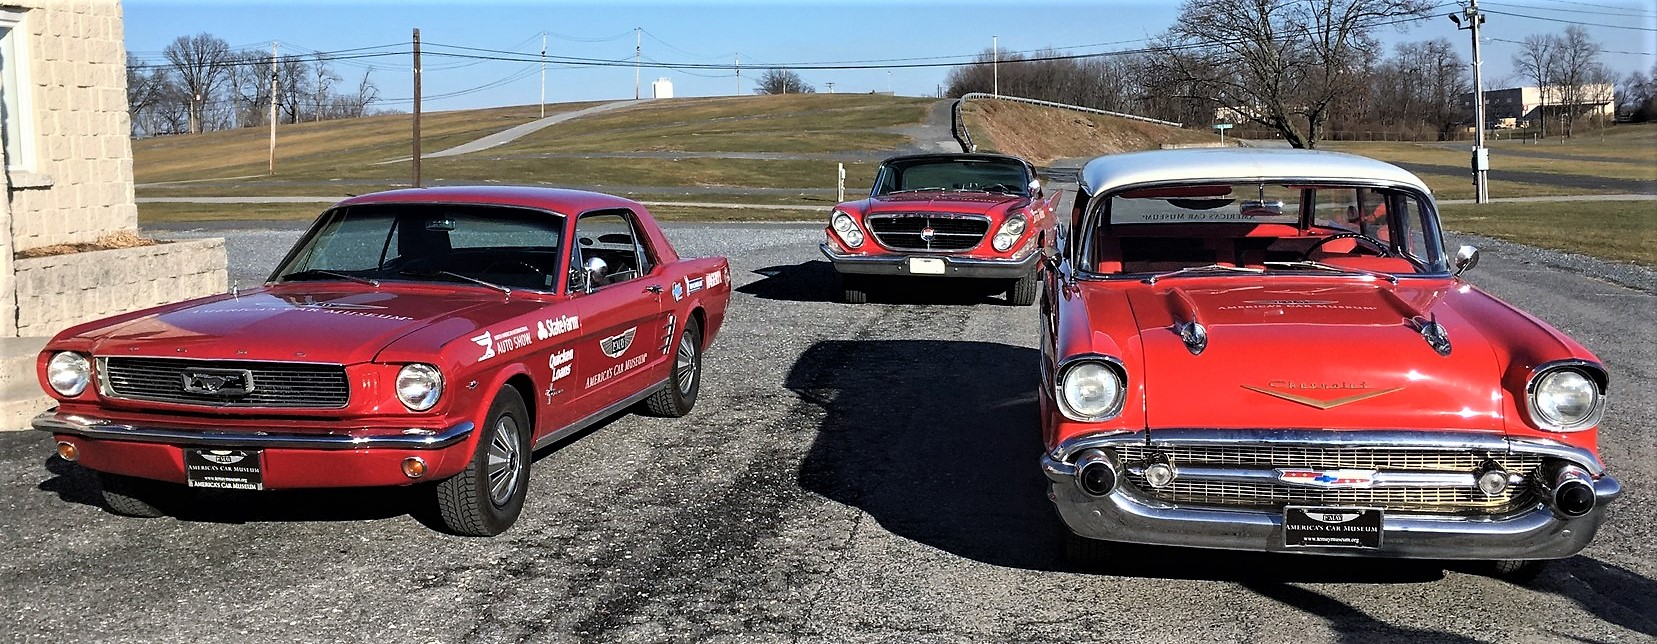 , Bumps, bruises and teamwork deliver The Drive Home II, ClassicCars.com Journal